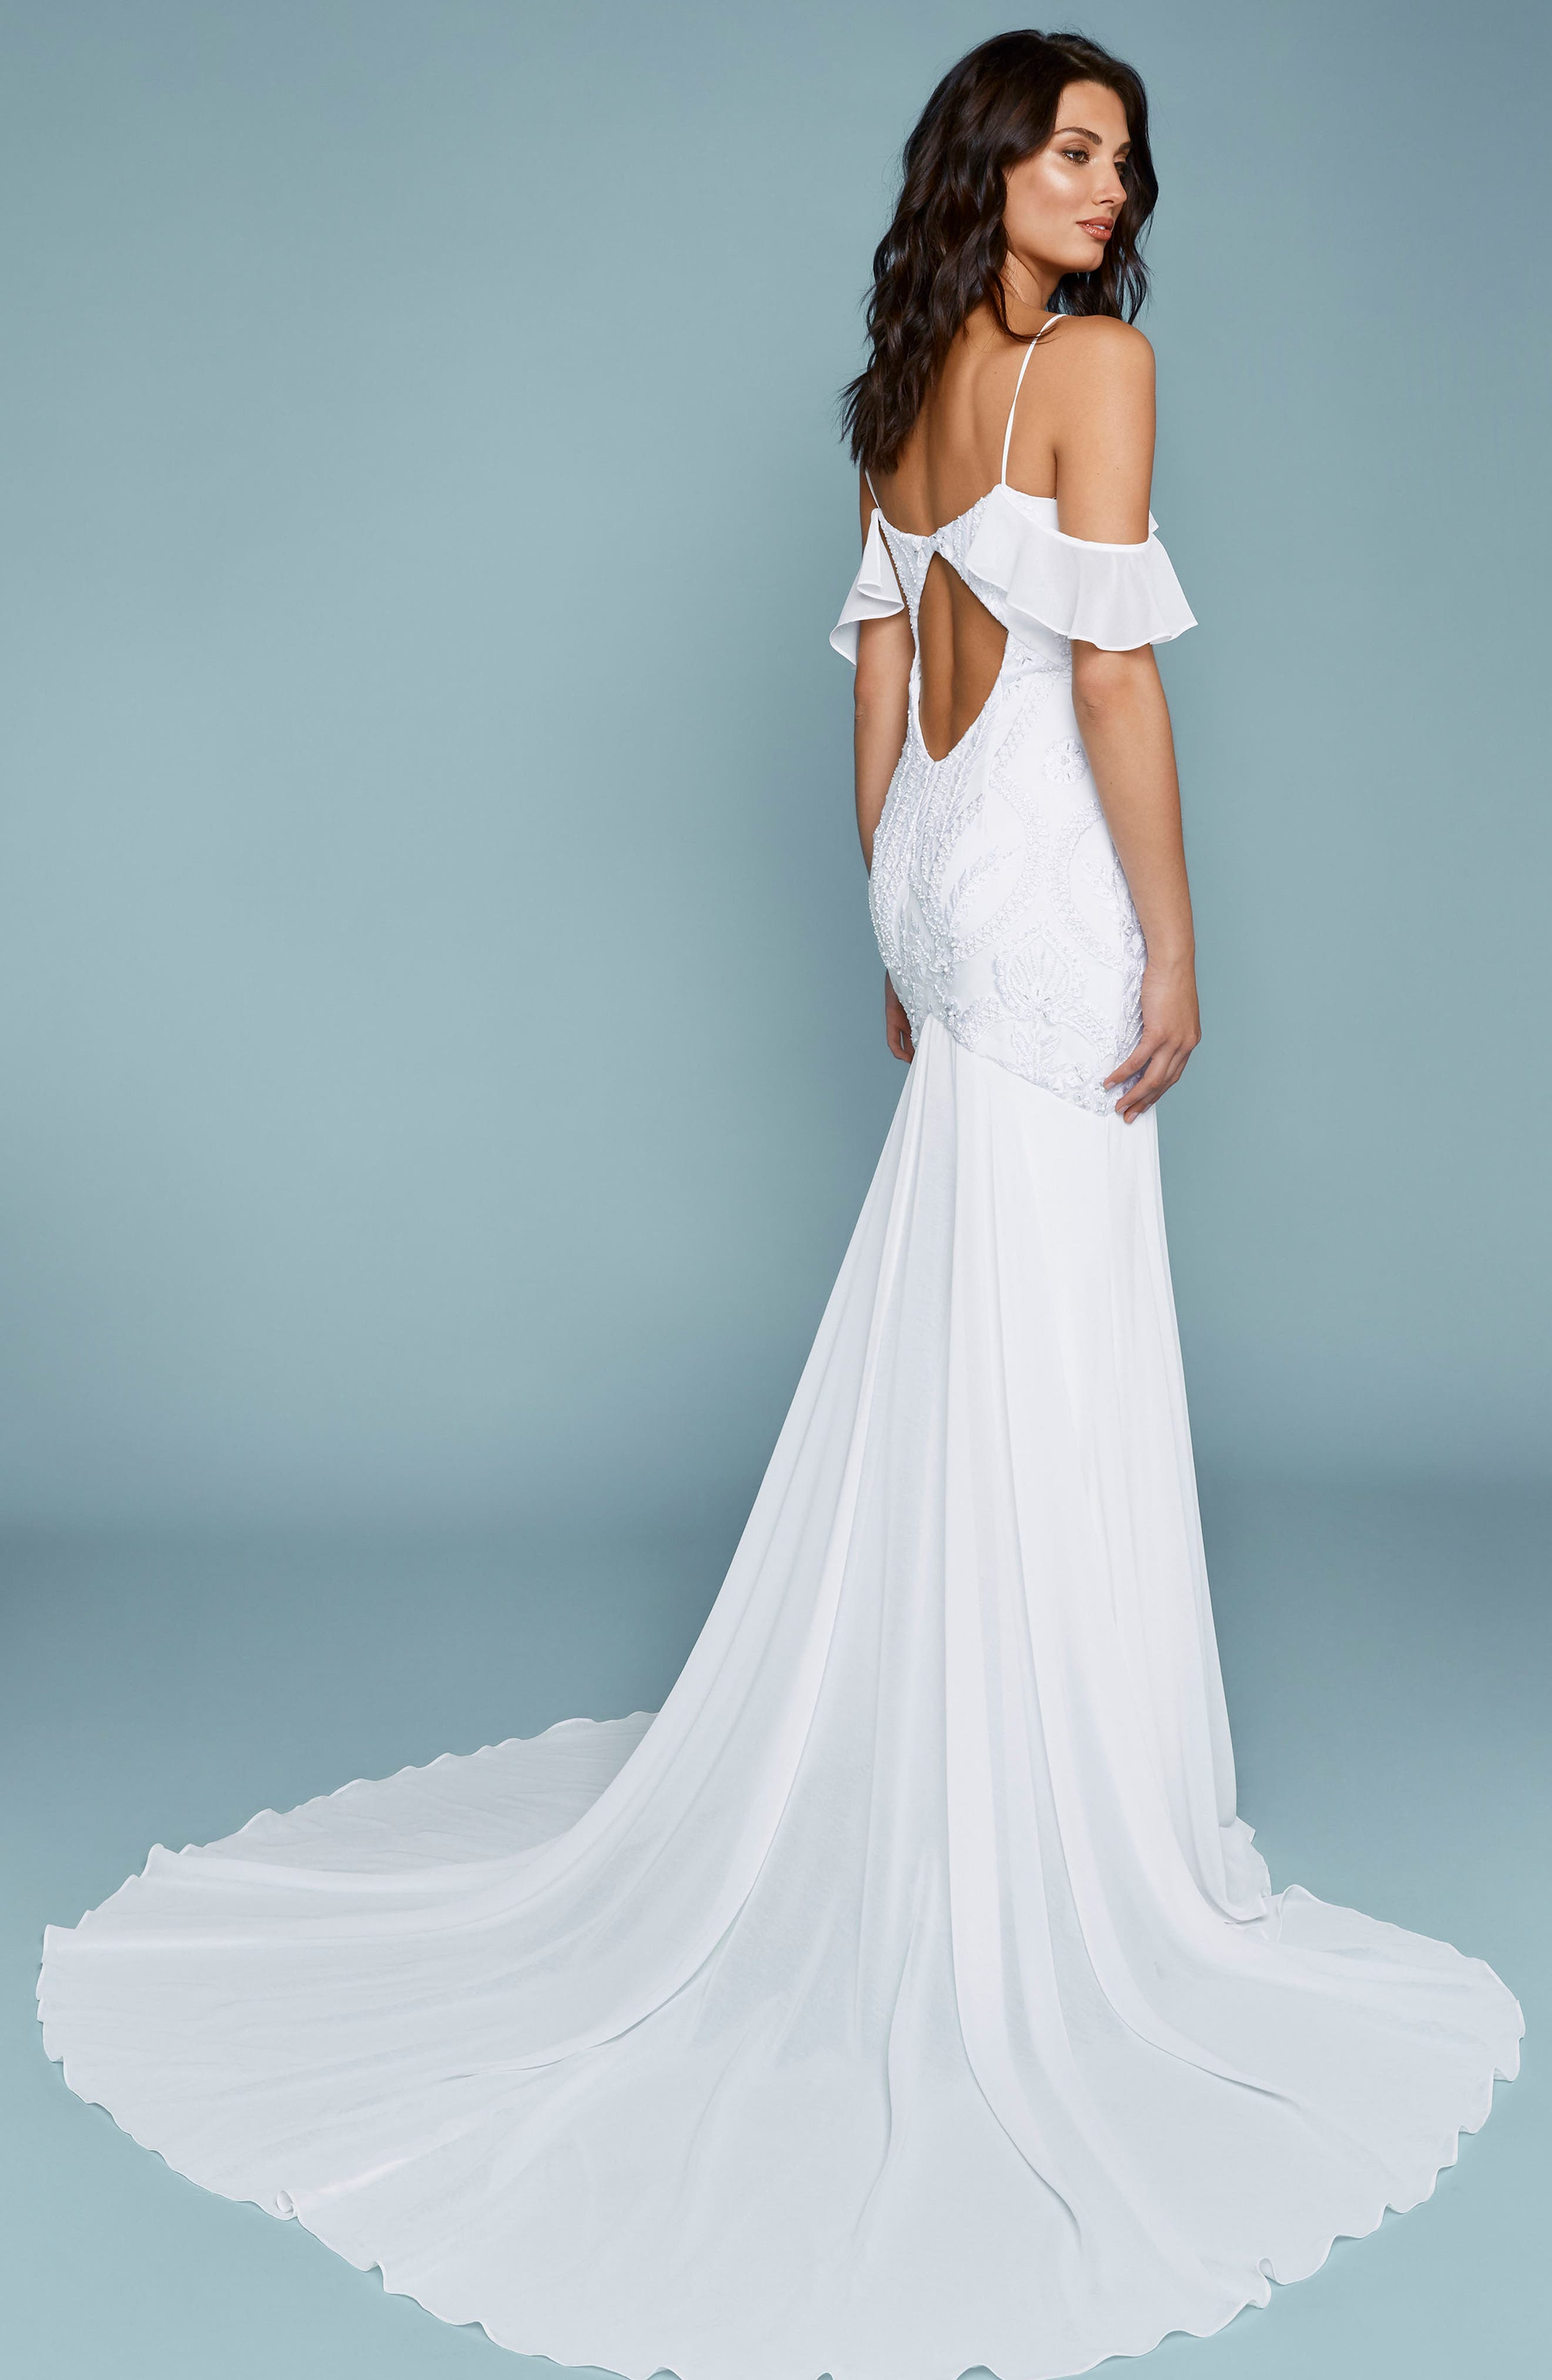 Embroidered Chiffon Off the Shoulder Mermaid Gown,                             Alternate thumbnail 2, color,                             Ivory/ Ivory